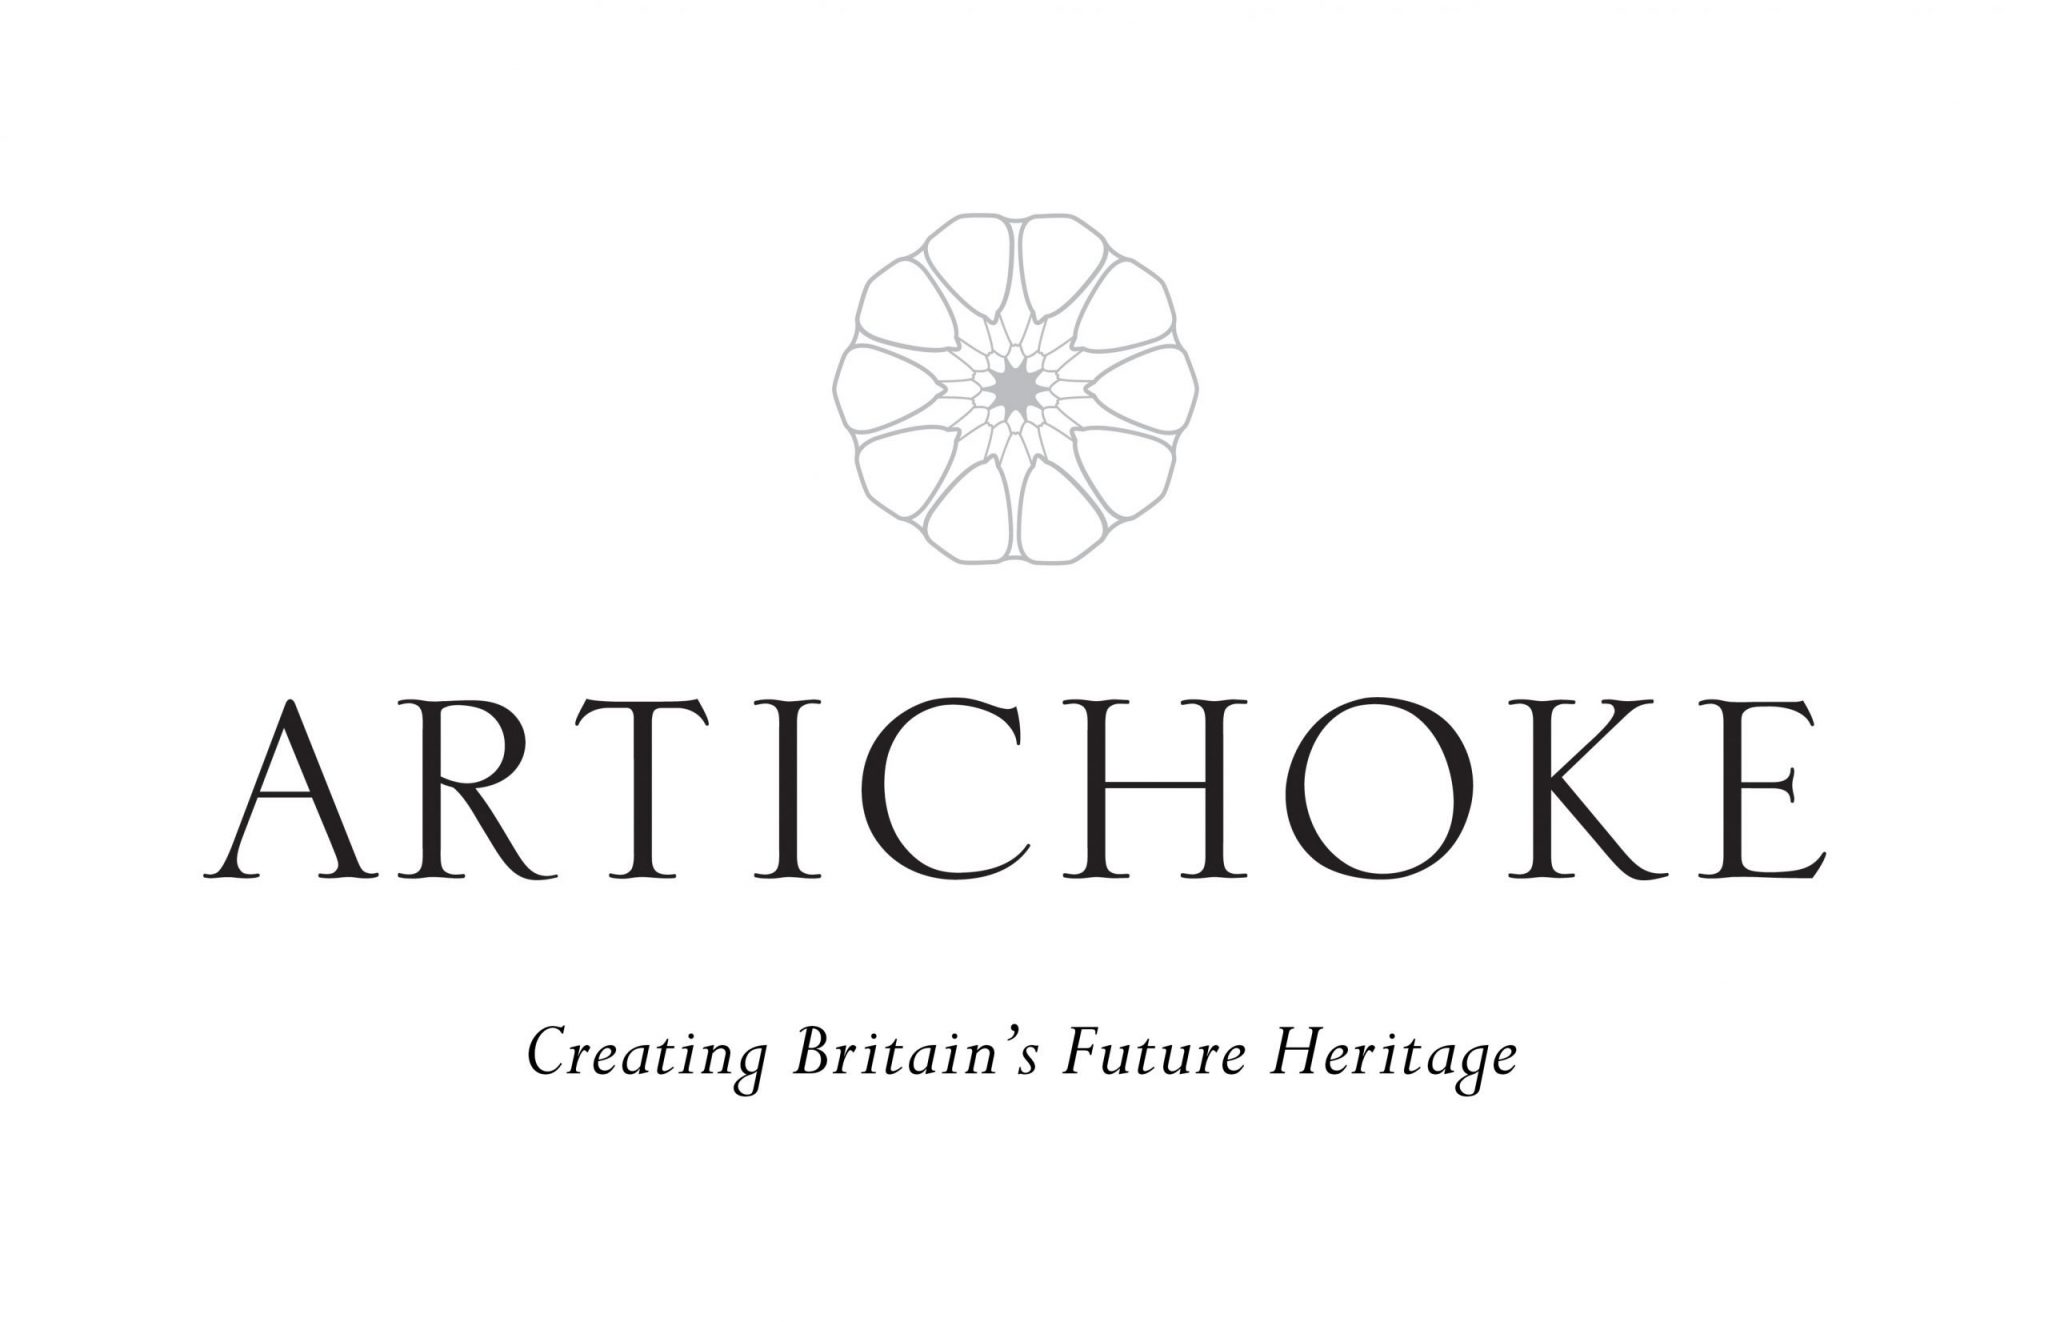 A logo for artichoke designers and makers of britain's future heritage